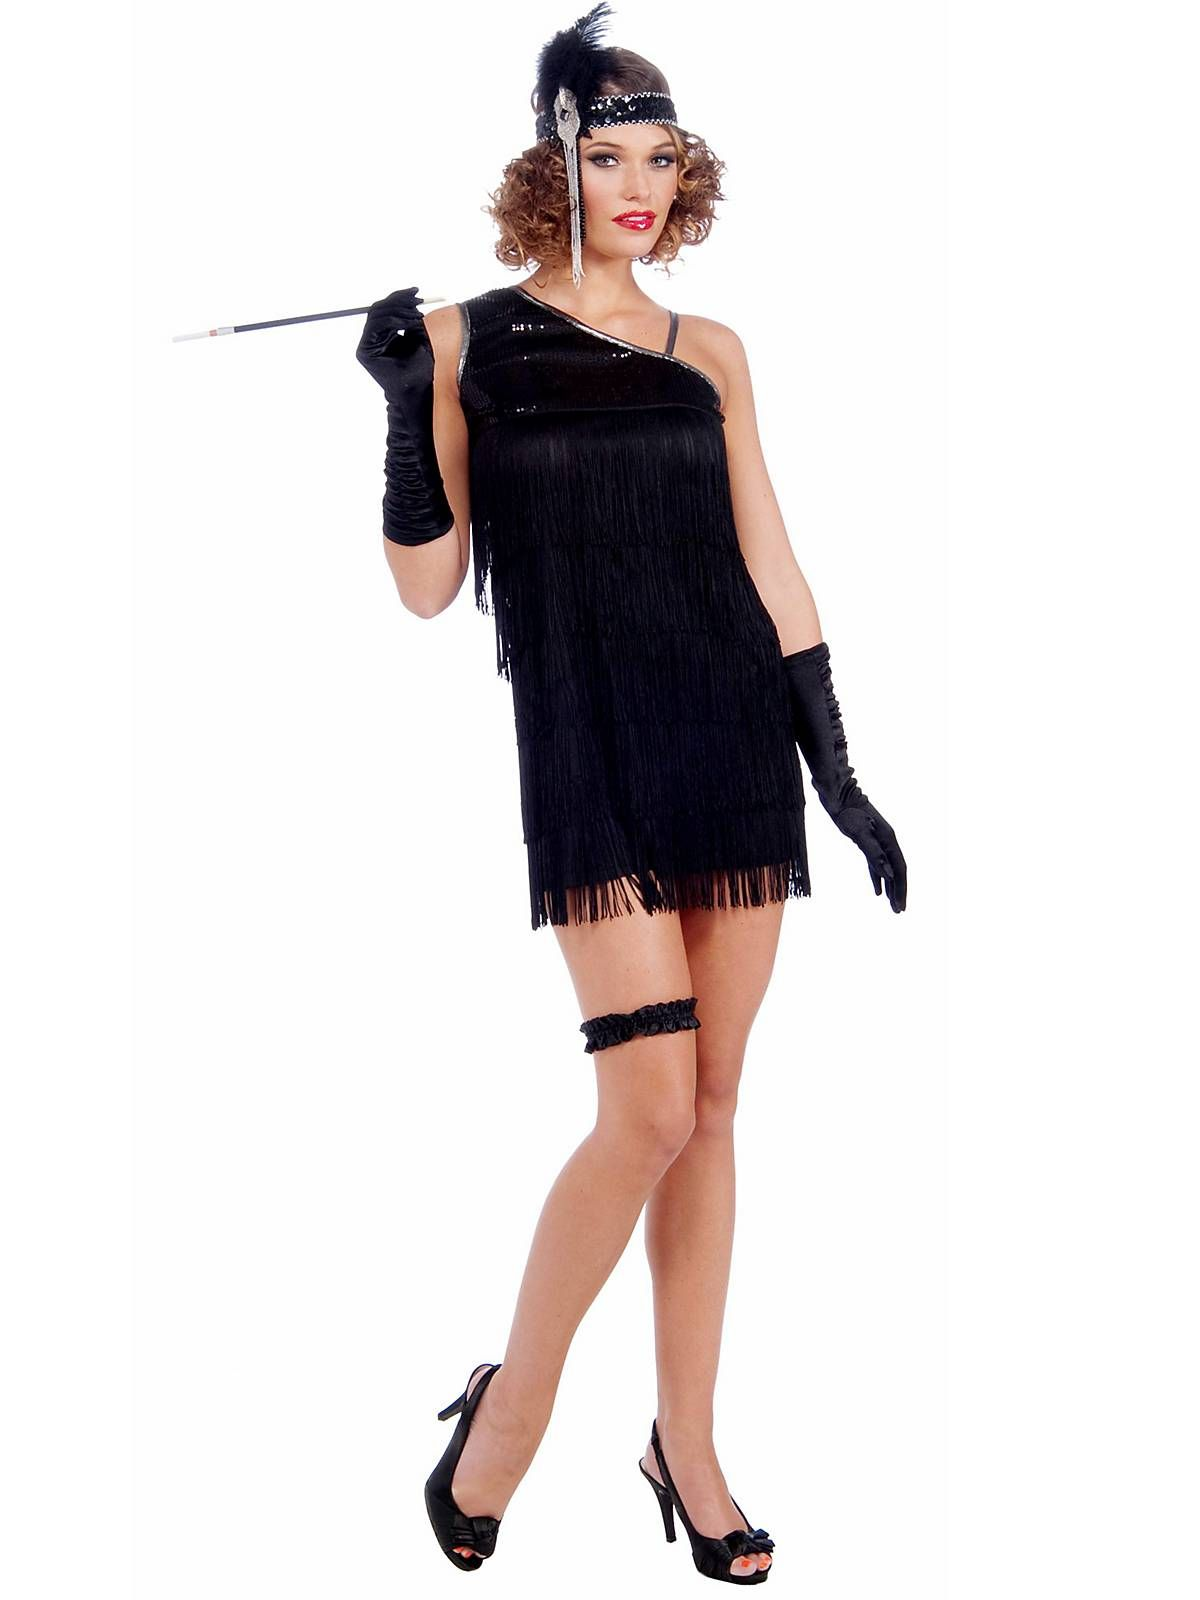 eb3ed2ad47b The Women s Sexy Black Diamond Dazzle Flapper Costume is the perfect flapper  outfit for 20 s themed parties.